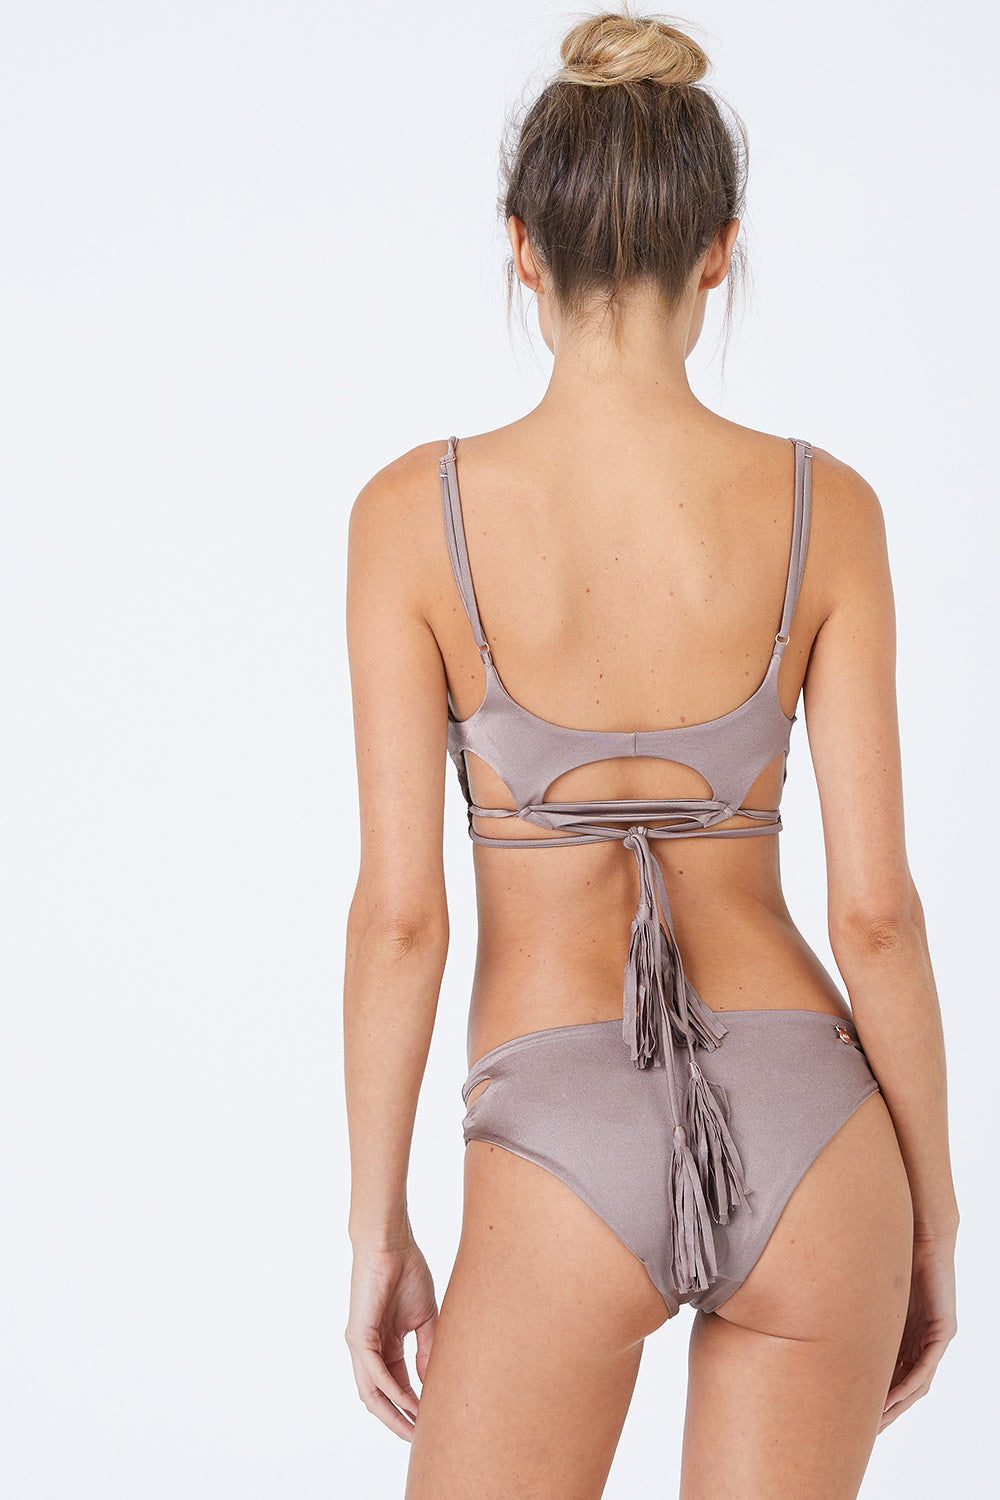 MALAI Cut Out Bikini Bottom - Sparkly Taupe Bikini Bottom | Sparkly Taupe| Malai Cut Out Bikini Bottom - Sparkly Taupe. Features:  Cheeky bikini bottom Cut out sides Back View